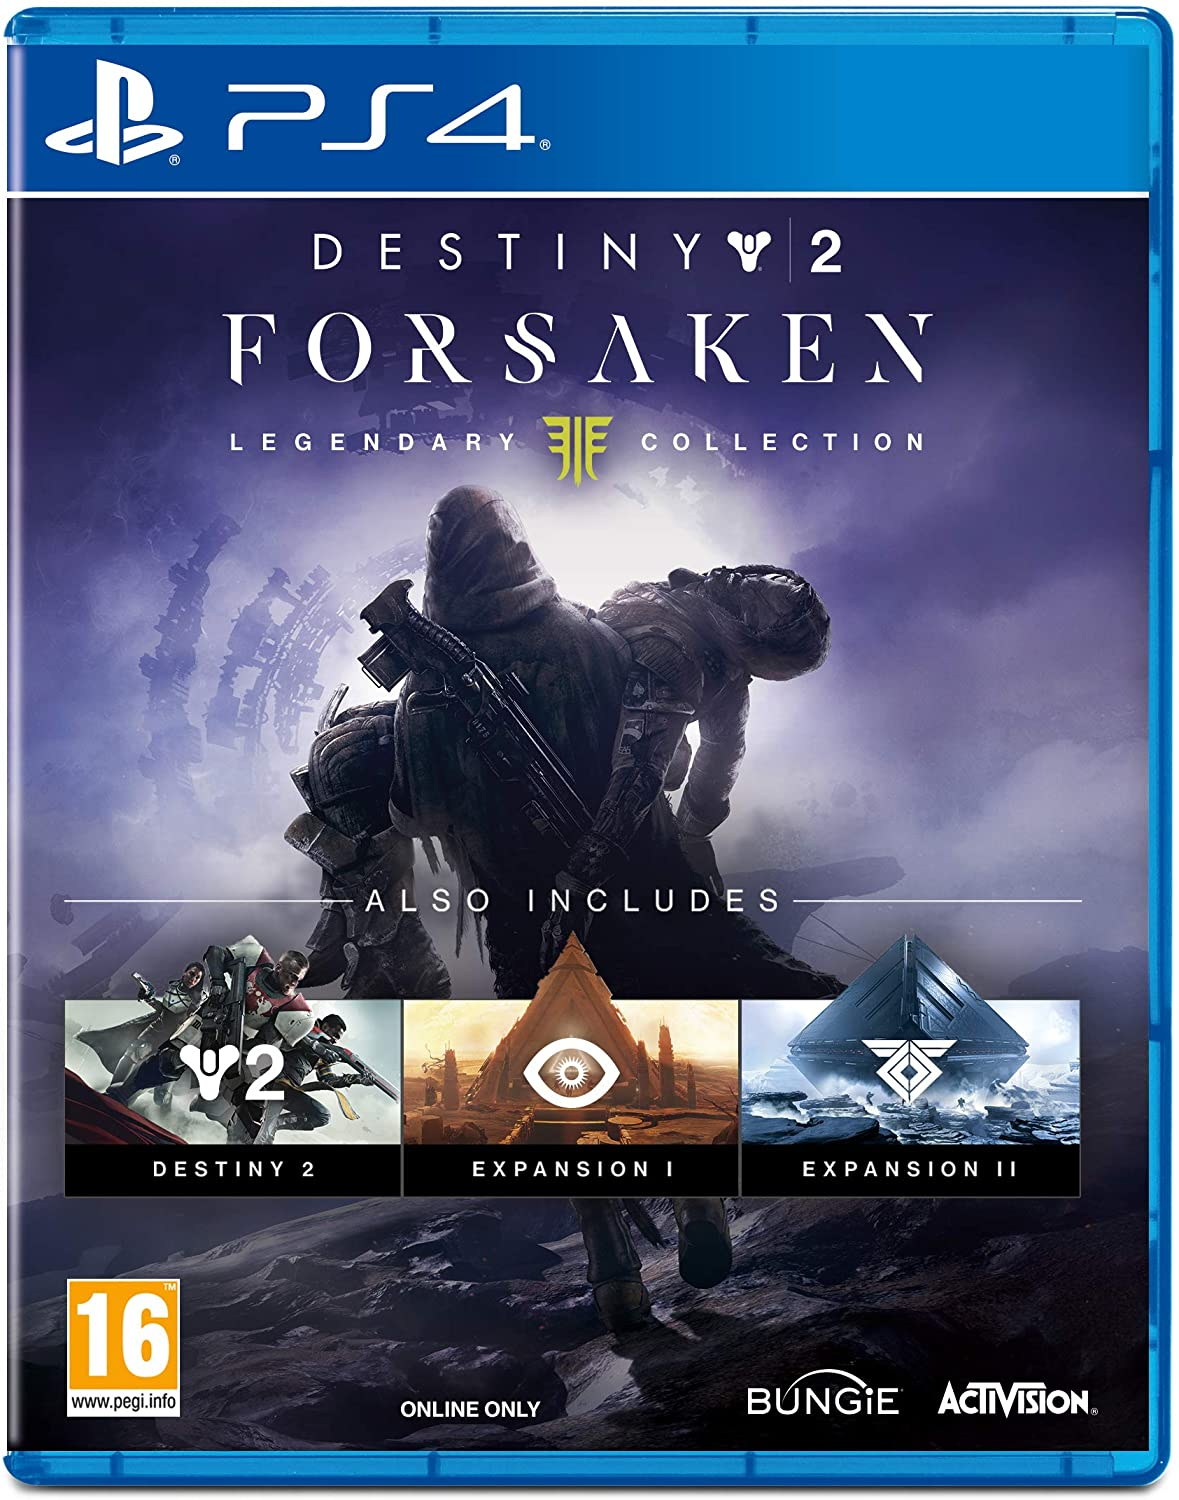 PS4 - DESTINY 2 LEGENDARY EDITION